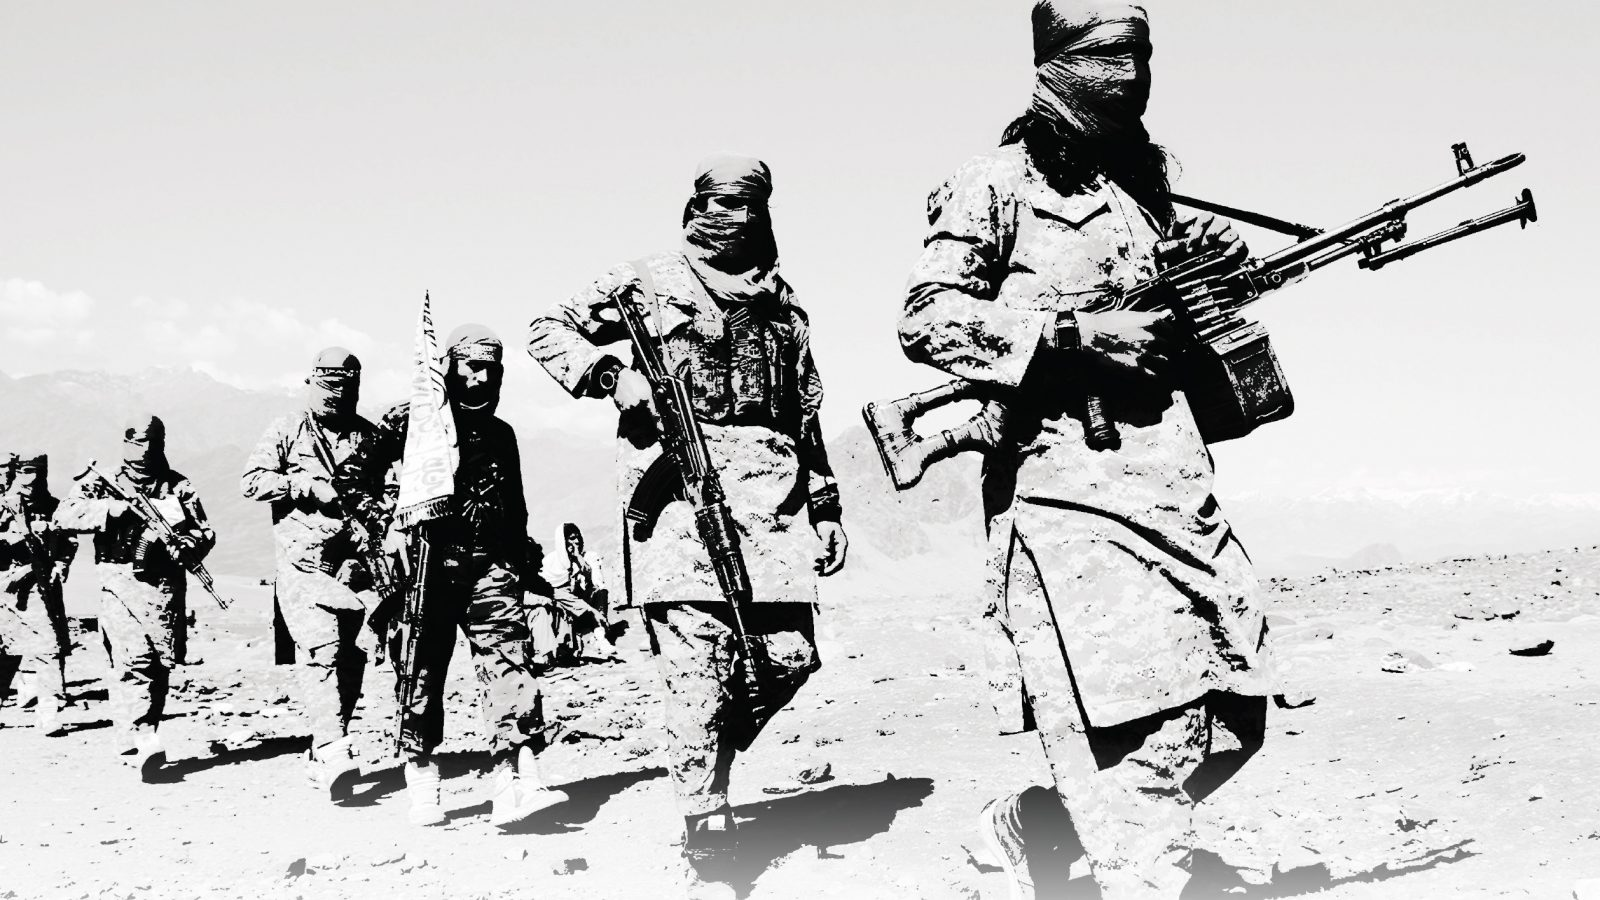 A black and white photograph of Taliban fighters carrying weapons and crossing a rocky terrain